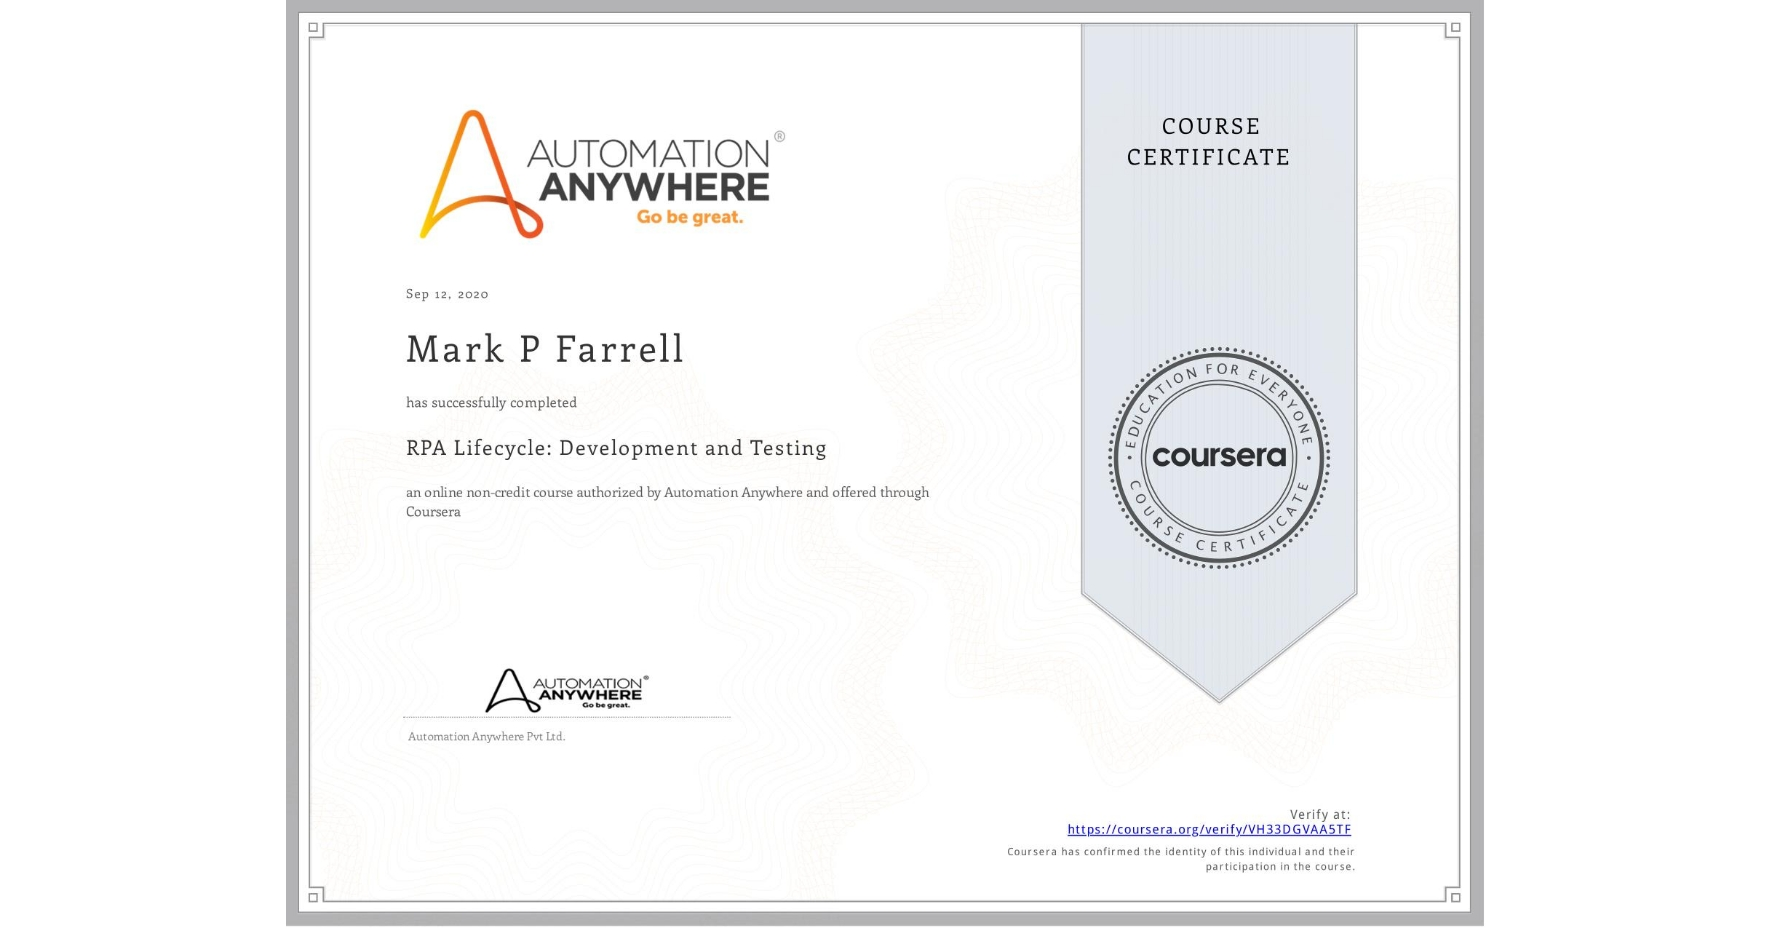 View certificate for Mark P Farrell, RPA Lifecycle: Development and Testing, an online non-credit course authorized by Automation Anywhere and offered through Coursera